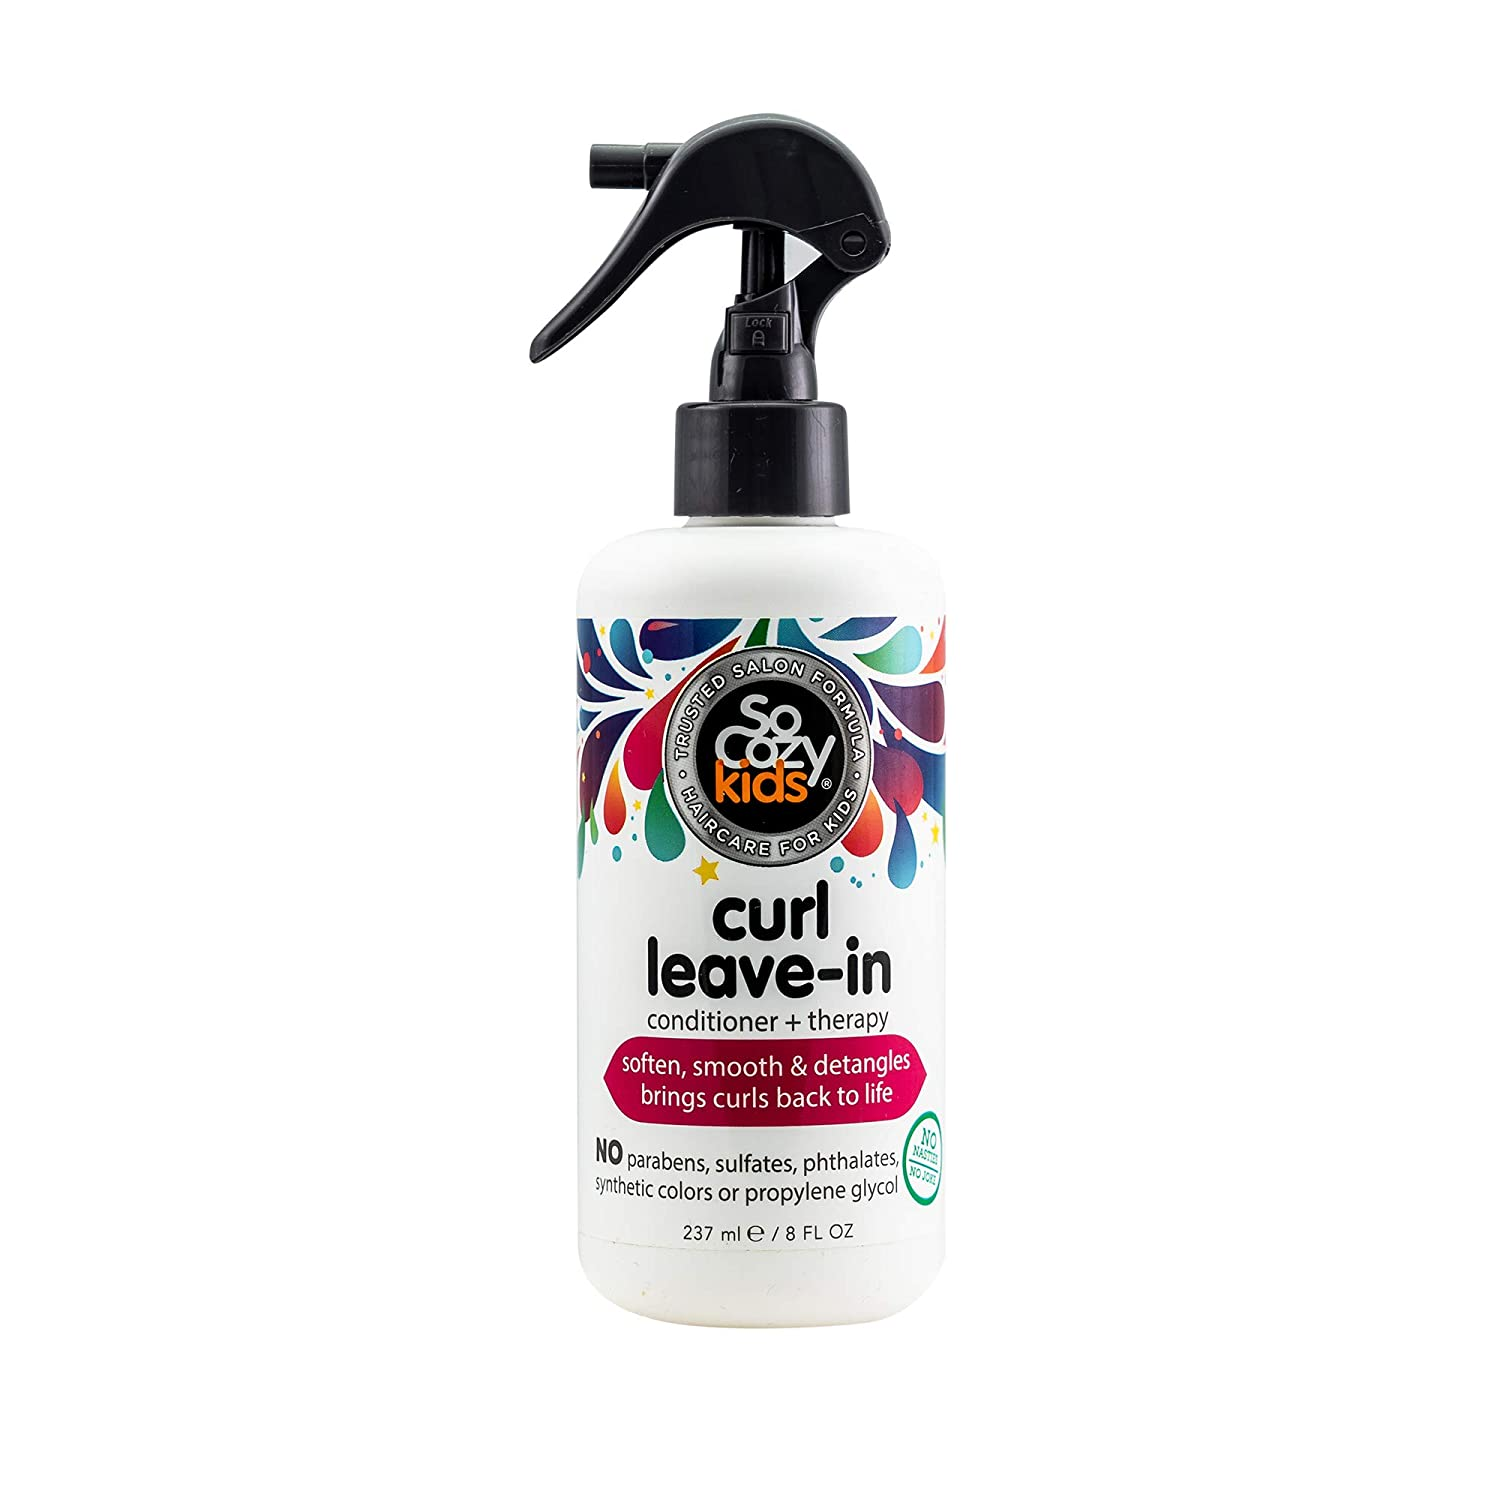 SoCozy Curl Leave-In Conditioner - Detangles and Restores Curls While Infusing Them with Moisture for Shiny, Soft Curls - Sweet Pea Scent, 8 Fluid Ounces